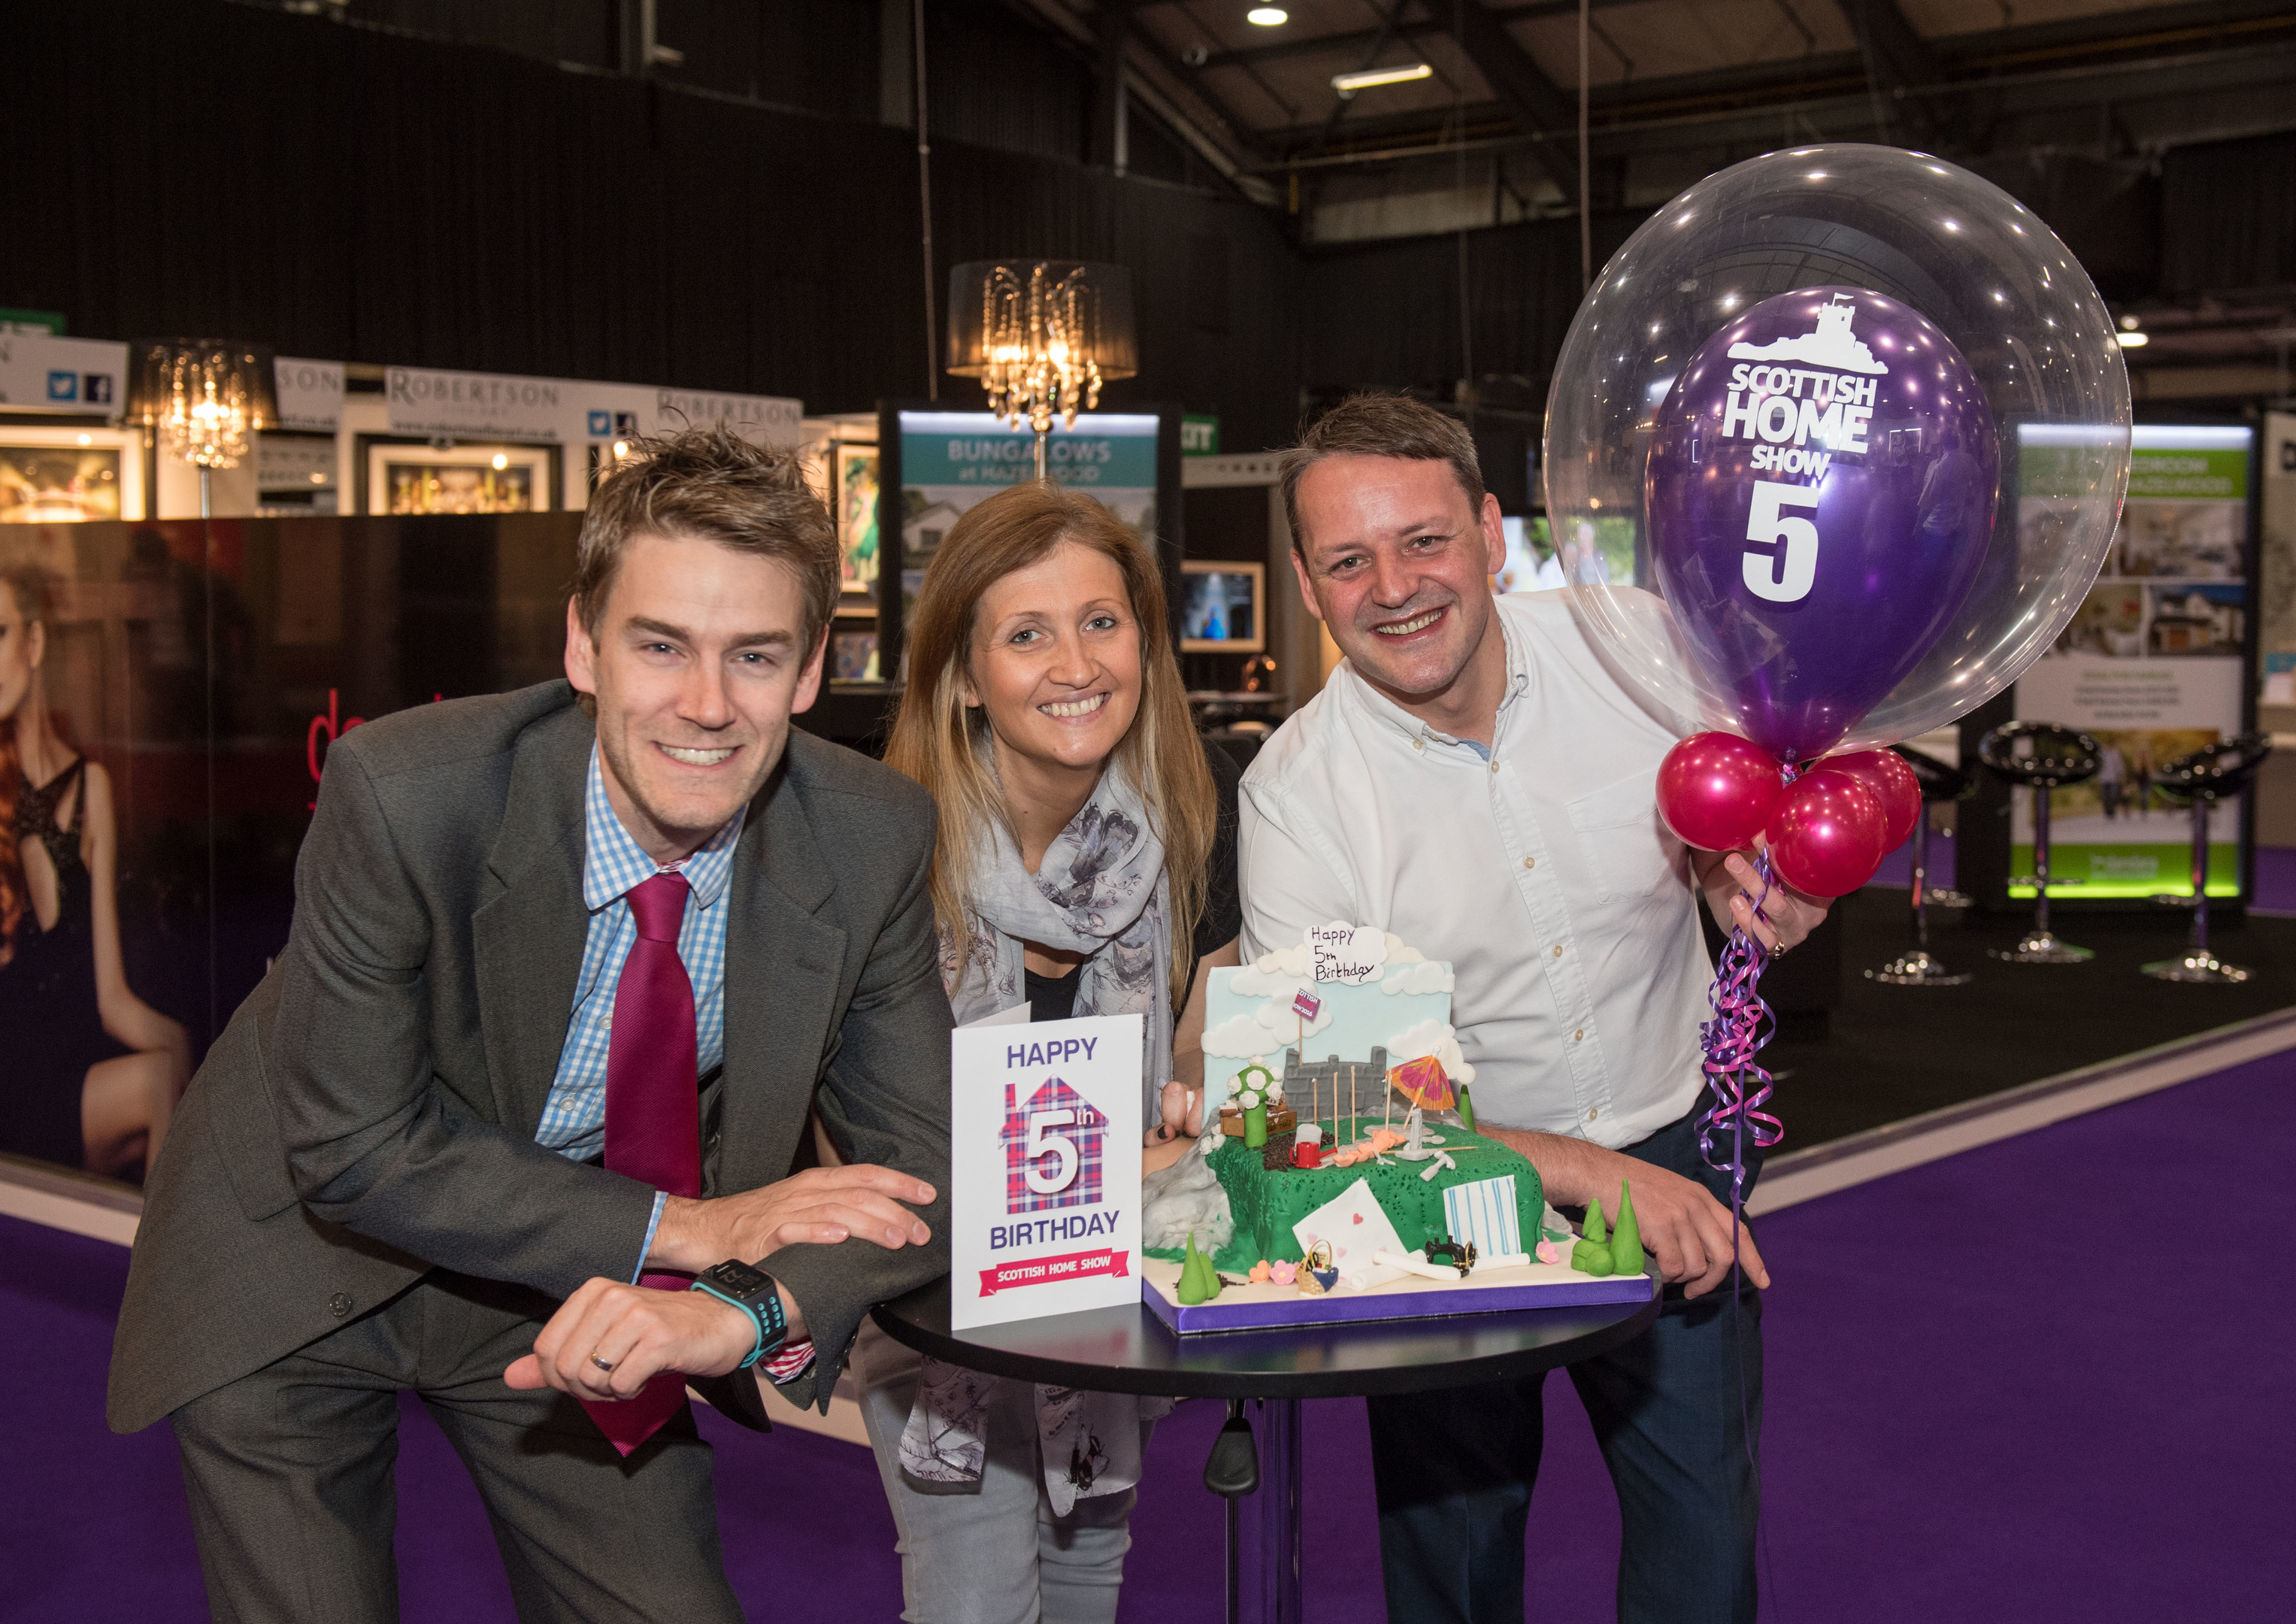 Photo (left to right): Peter Best, Sales Manager, Dandara; Anna MacKenzie, Senior Sales Manager at Aberdeen Exhibition and Conference Centre; Darren Ross, Director at Scottish Home Show.  Picture by Michal Wachucik / Abermedia